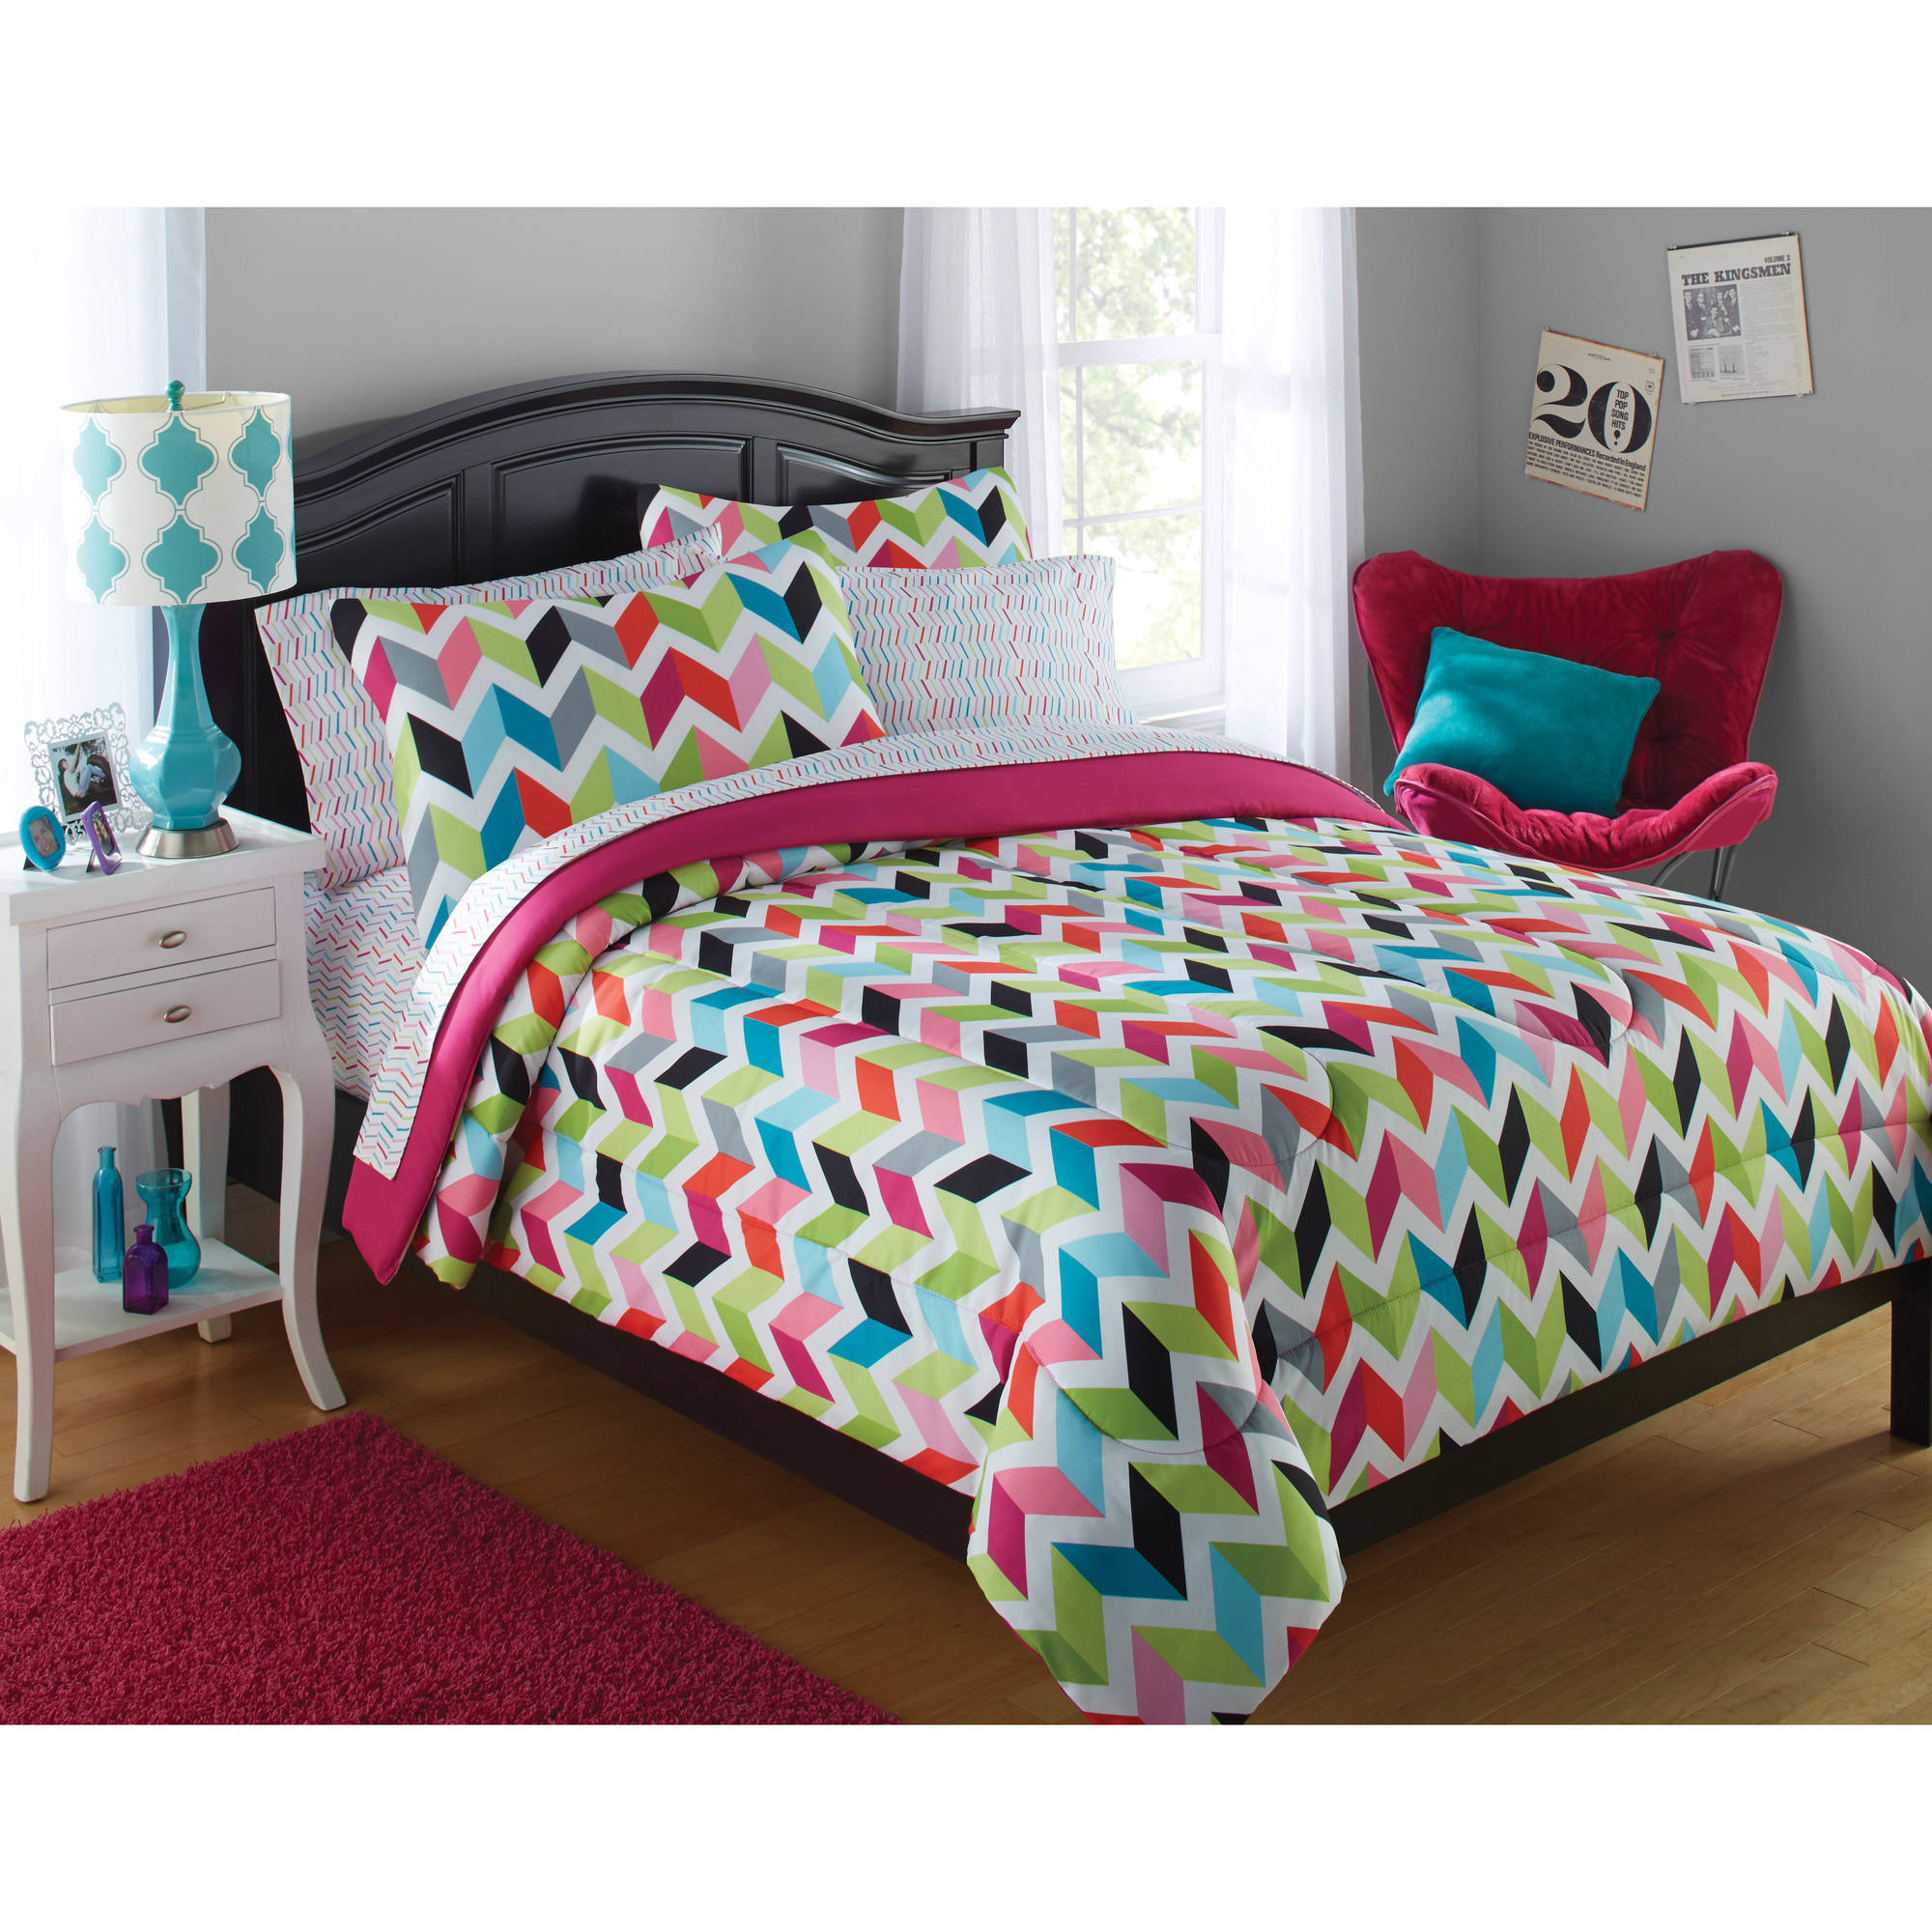 Your Zone Bright Chevron Print Bed In A Bag Set 1 Each Walmart Com